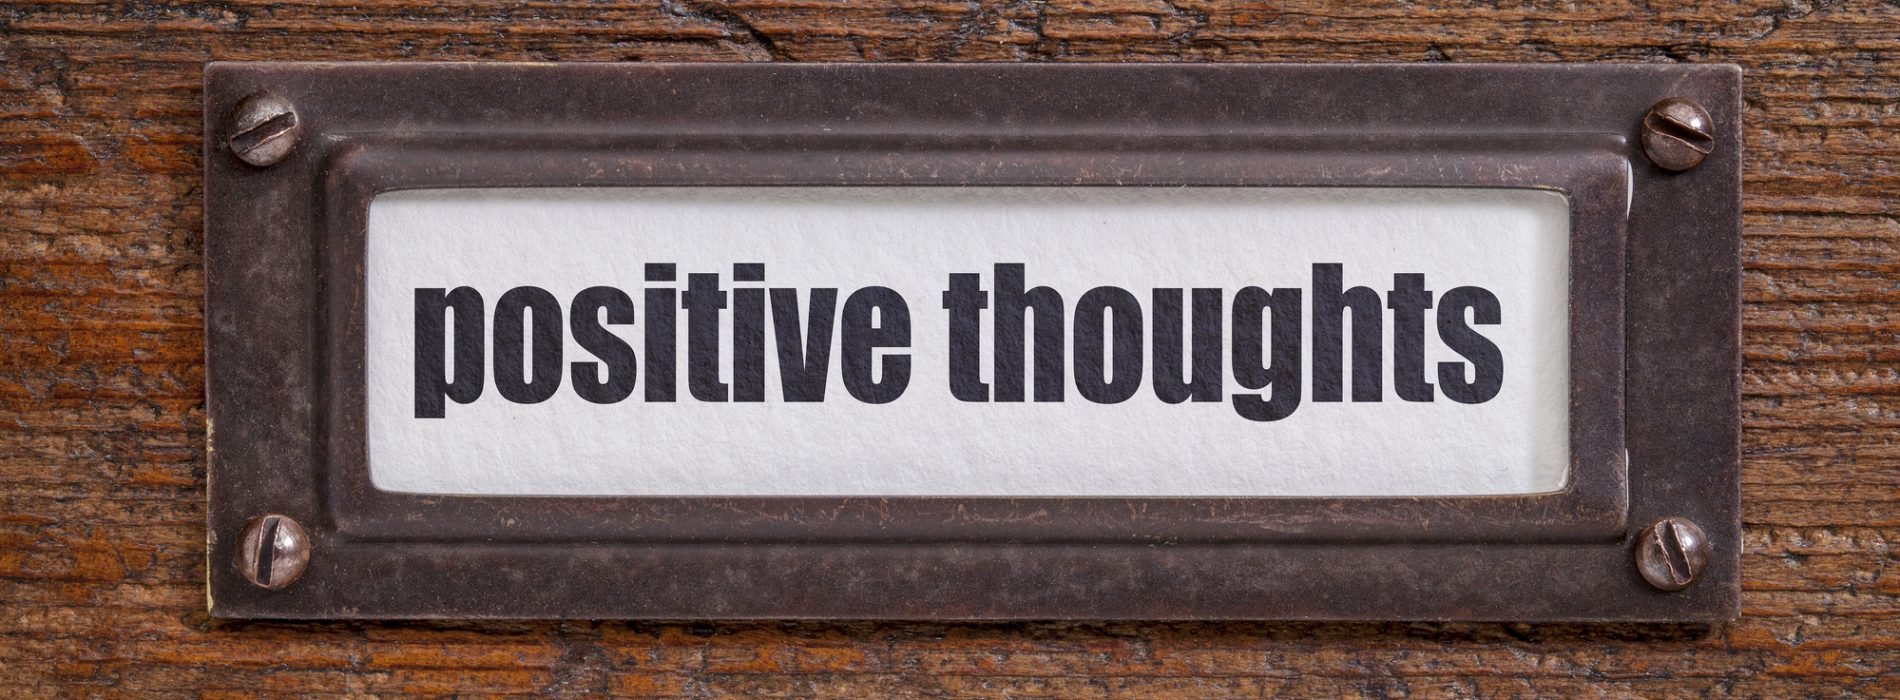 Staying Positive When Living in the Negative